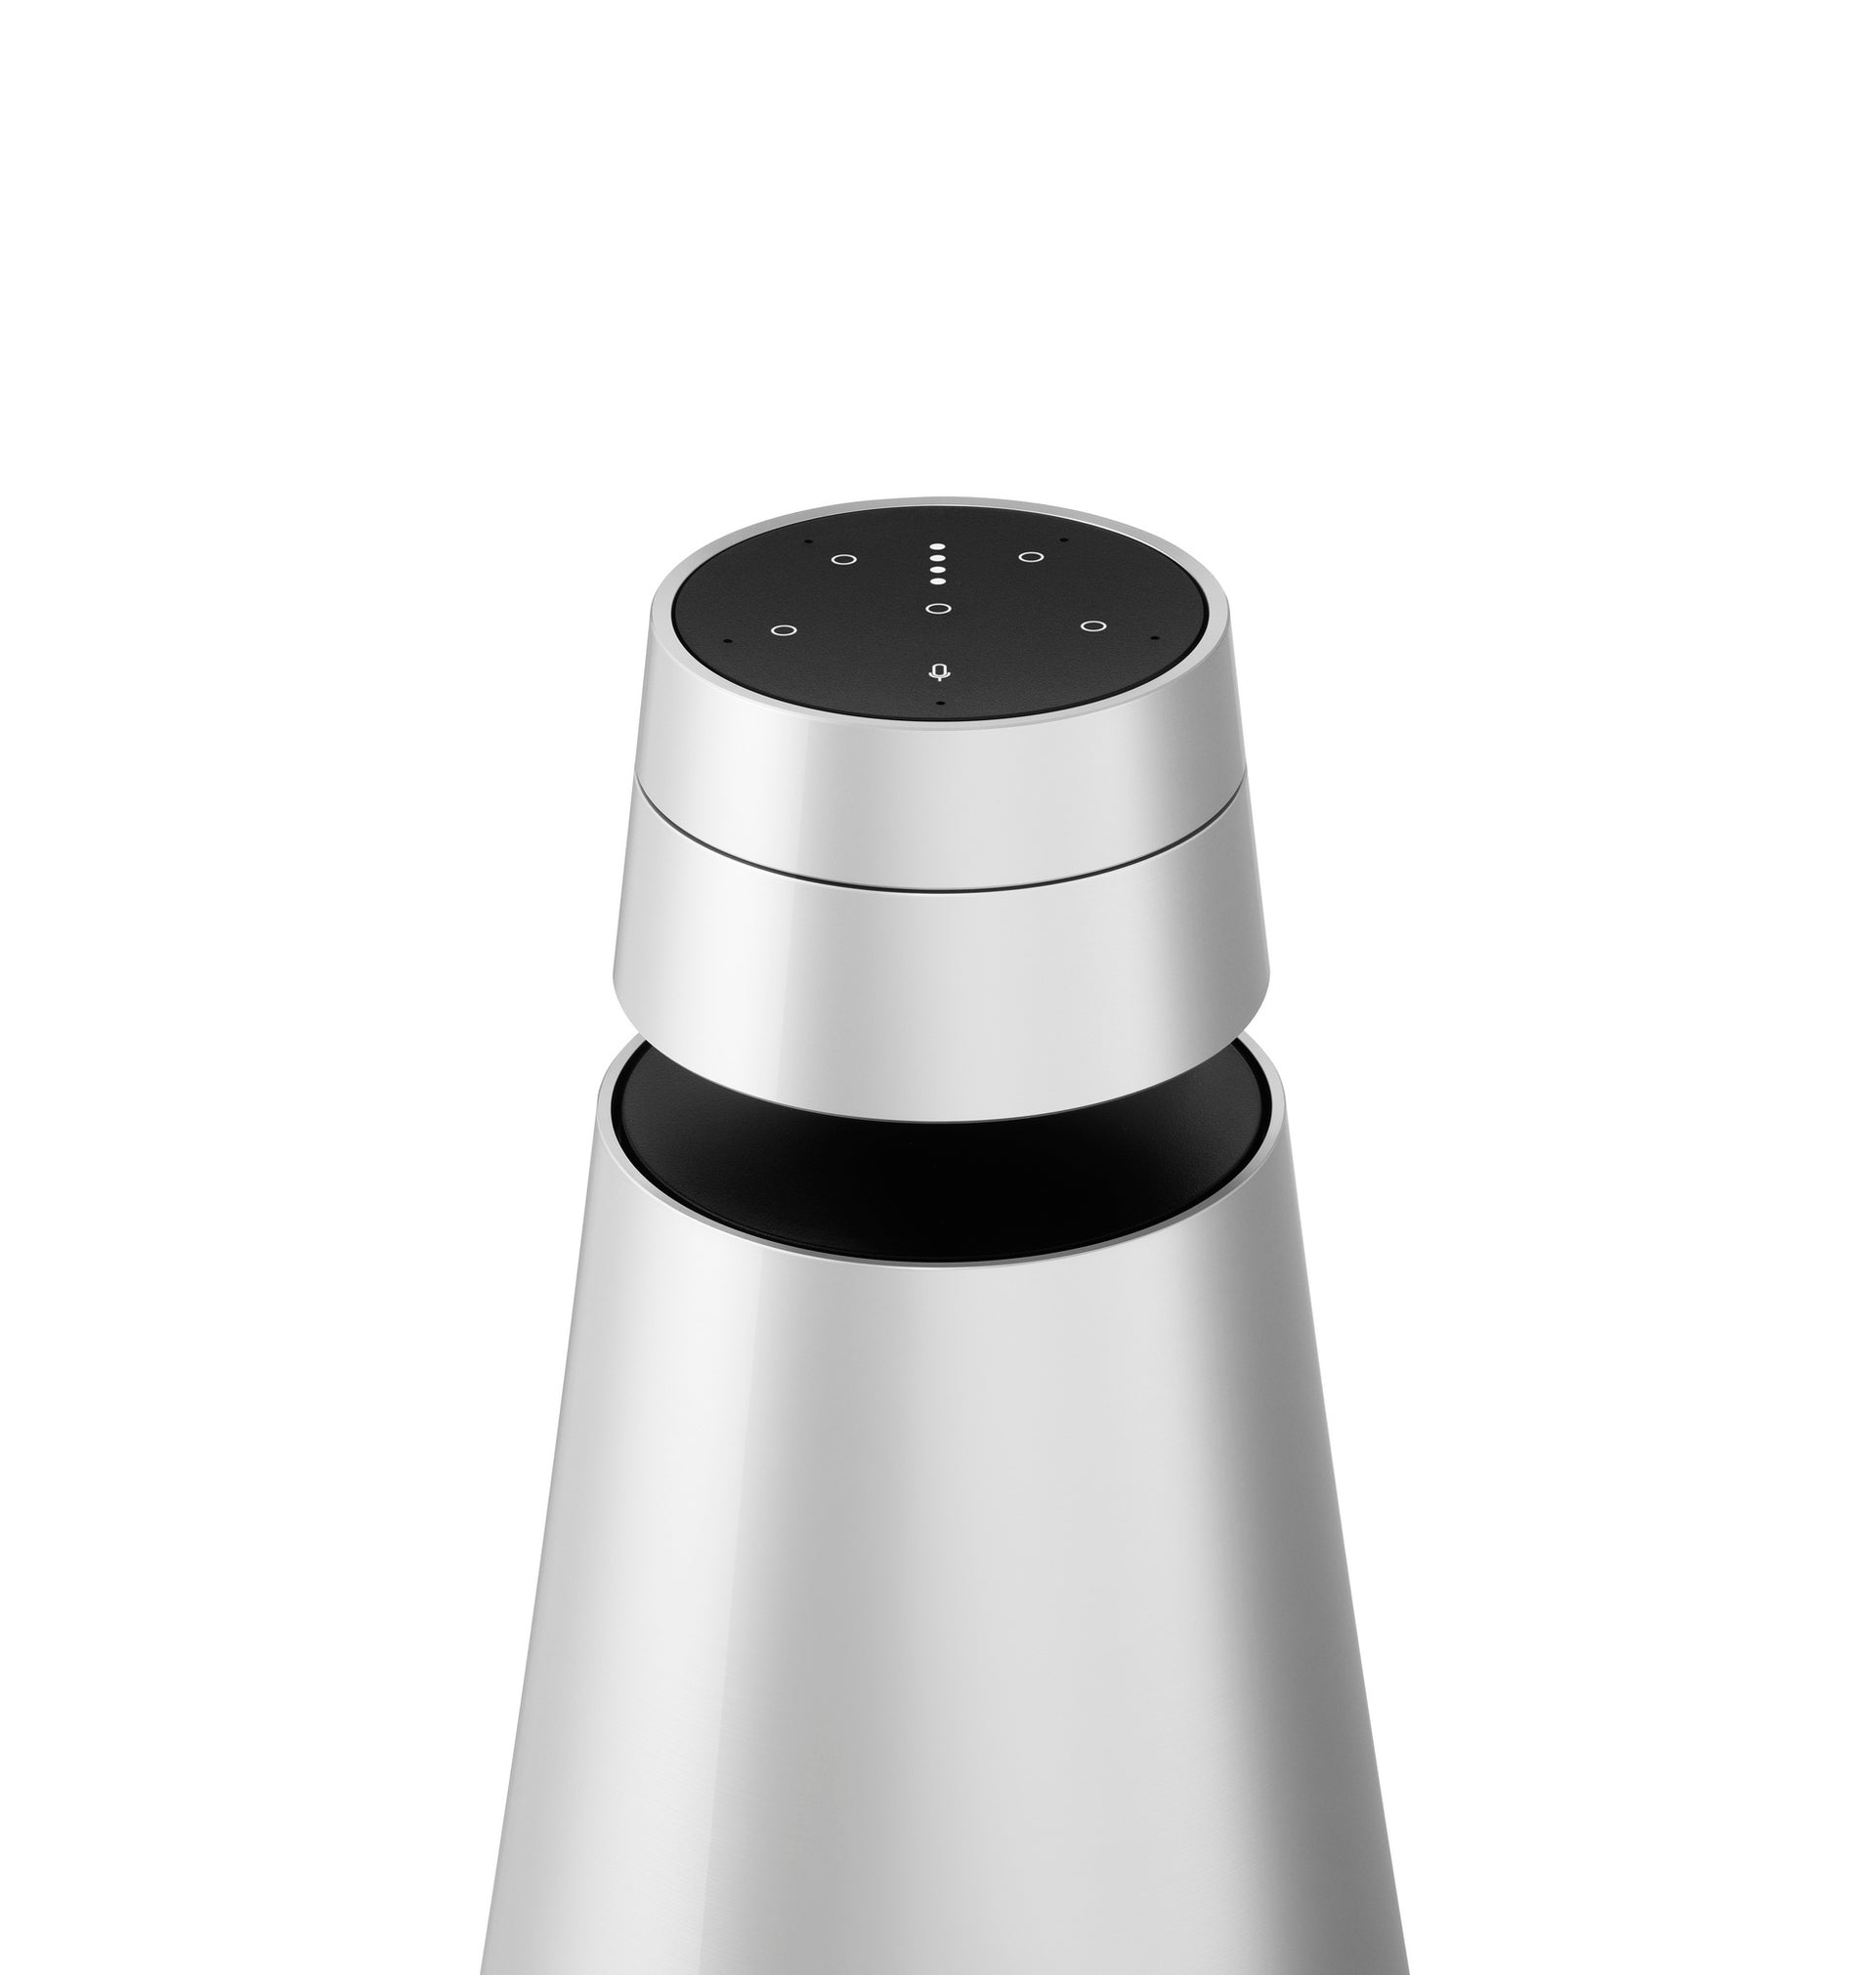 BeoSound 1 Portable Wireless Speaker with Google Voice Assistant